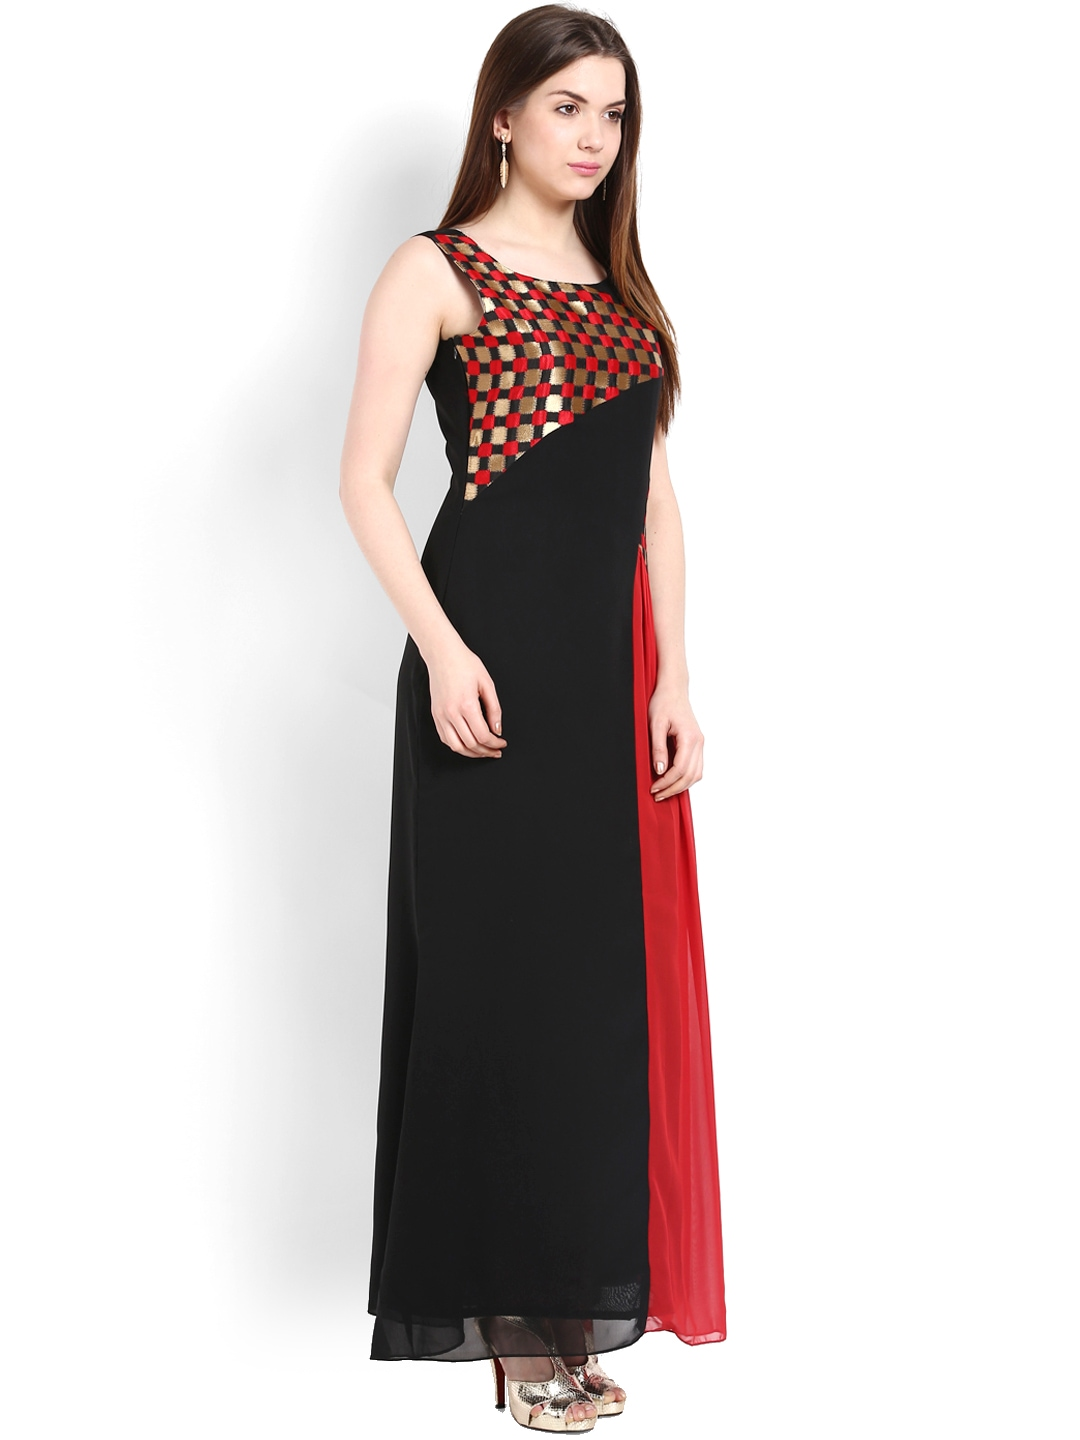 black maxi dresses Designed to radiate style, glamour and elegance, P.S. Frocks' stunning range of black maxi dresses not only impress, but genuinely provide comfort and quality. From plunging v-neck black maxi dresses to multi-way wrap black maxi dresses, whatever the occasion, P.S. Frocks have the perfect black maxi dress for you!